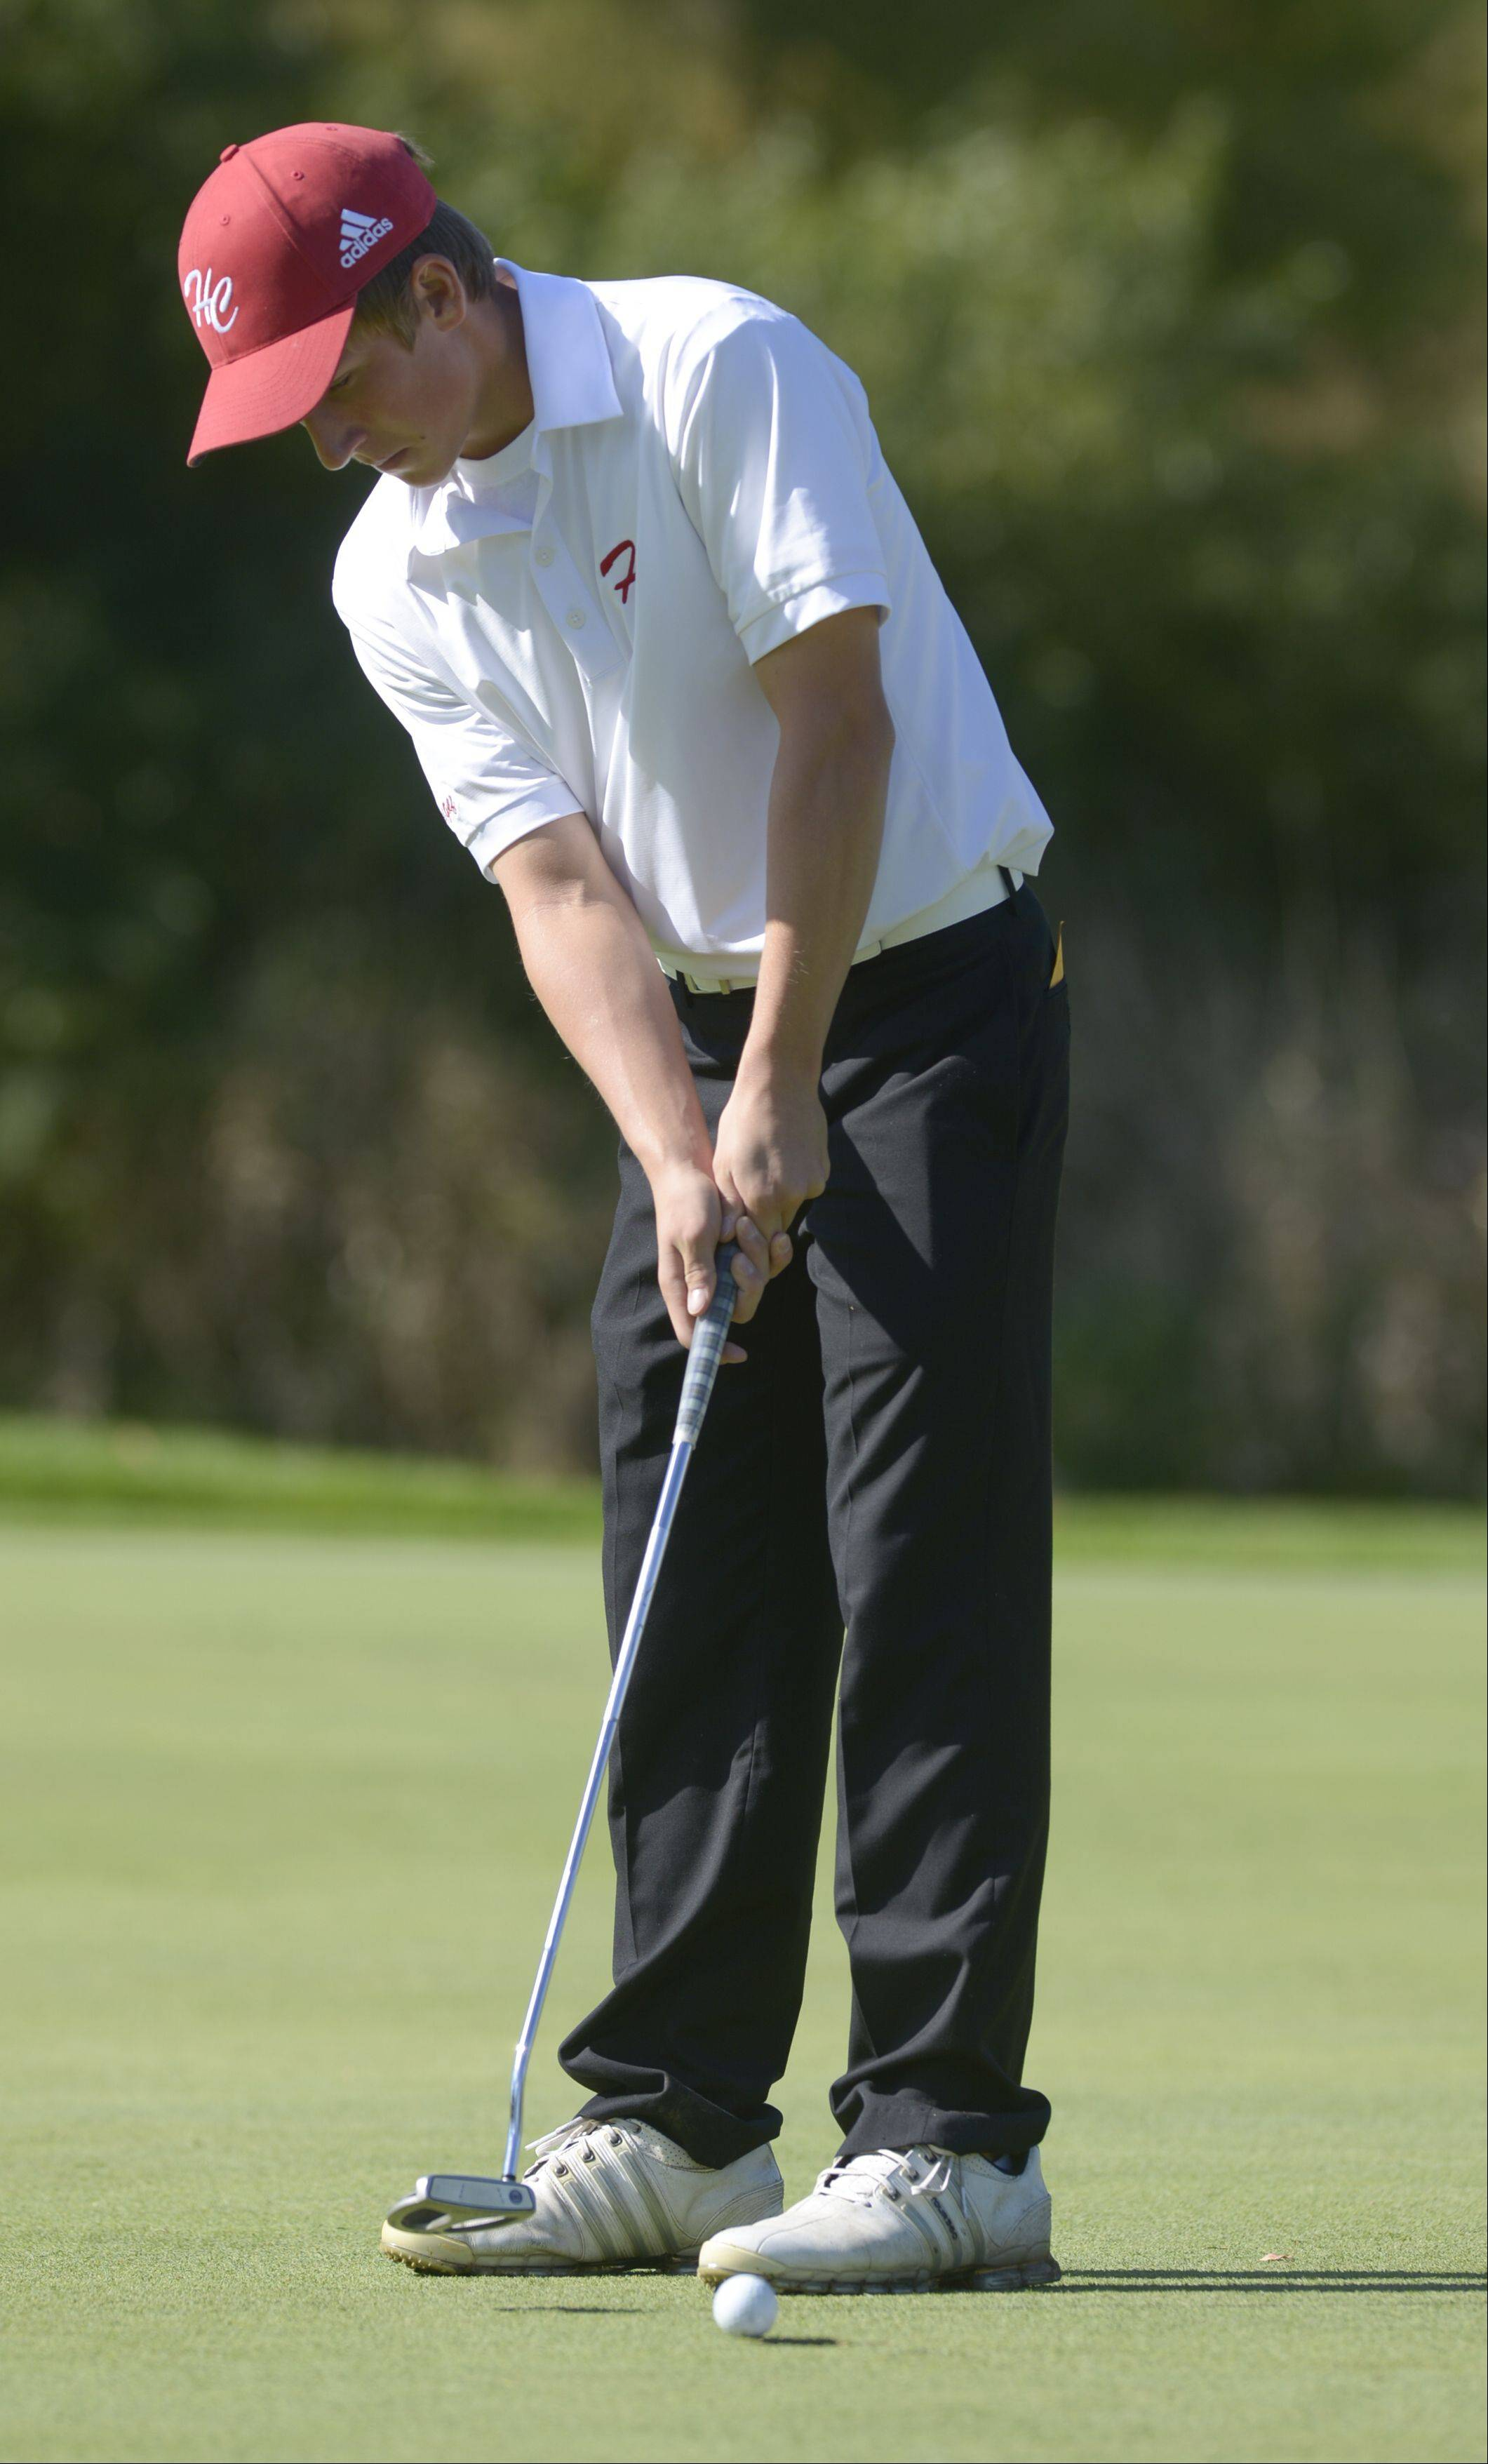 Mark Black/mblack@dailyherald.comDrew Shepherd of Hinsdale Central putts during the Class 3A Naperville Central sectional boys golf tournament, Monday at Springbrook Golf Course in Naperville.